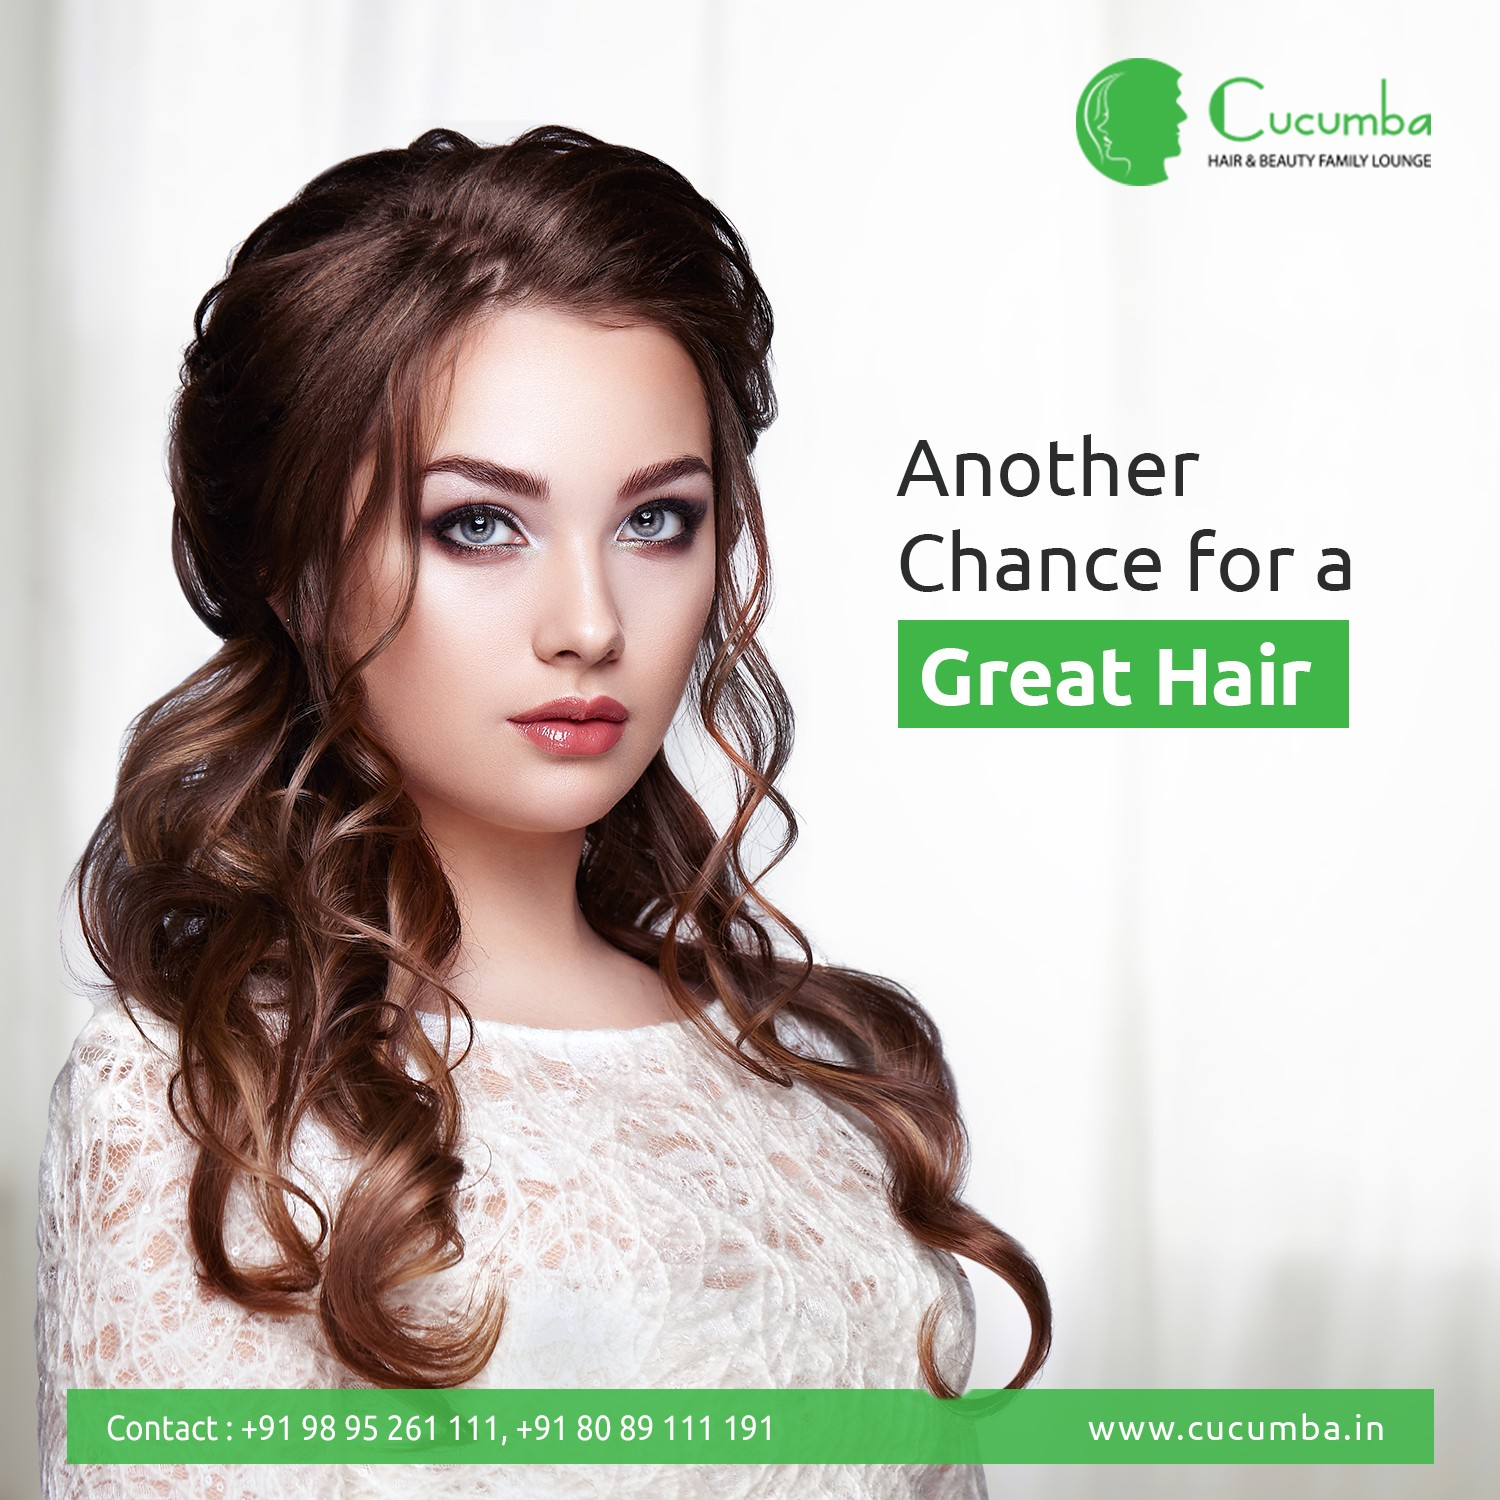 Beauty parlor in cochin | Cucumba